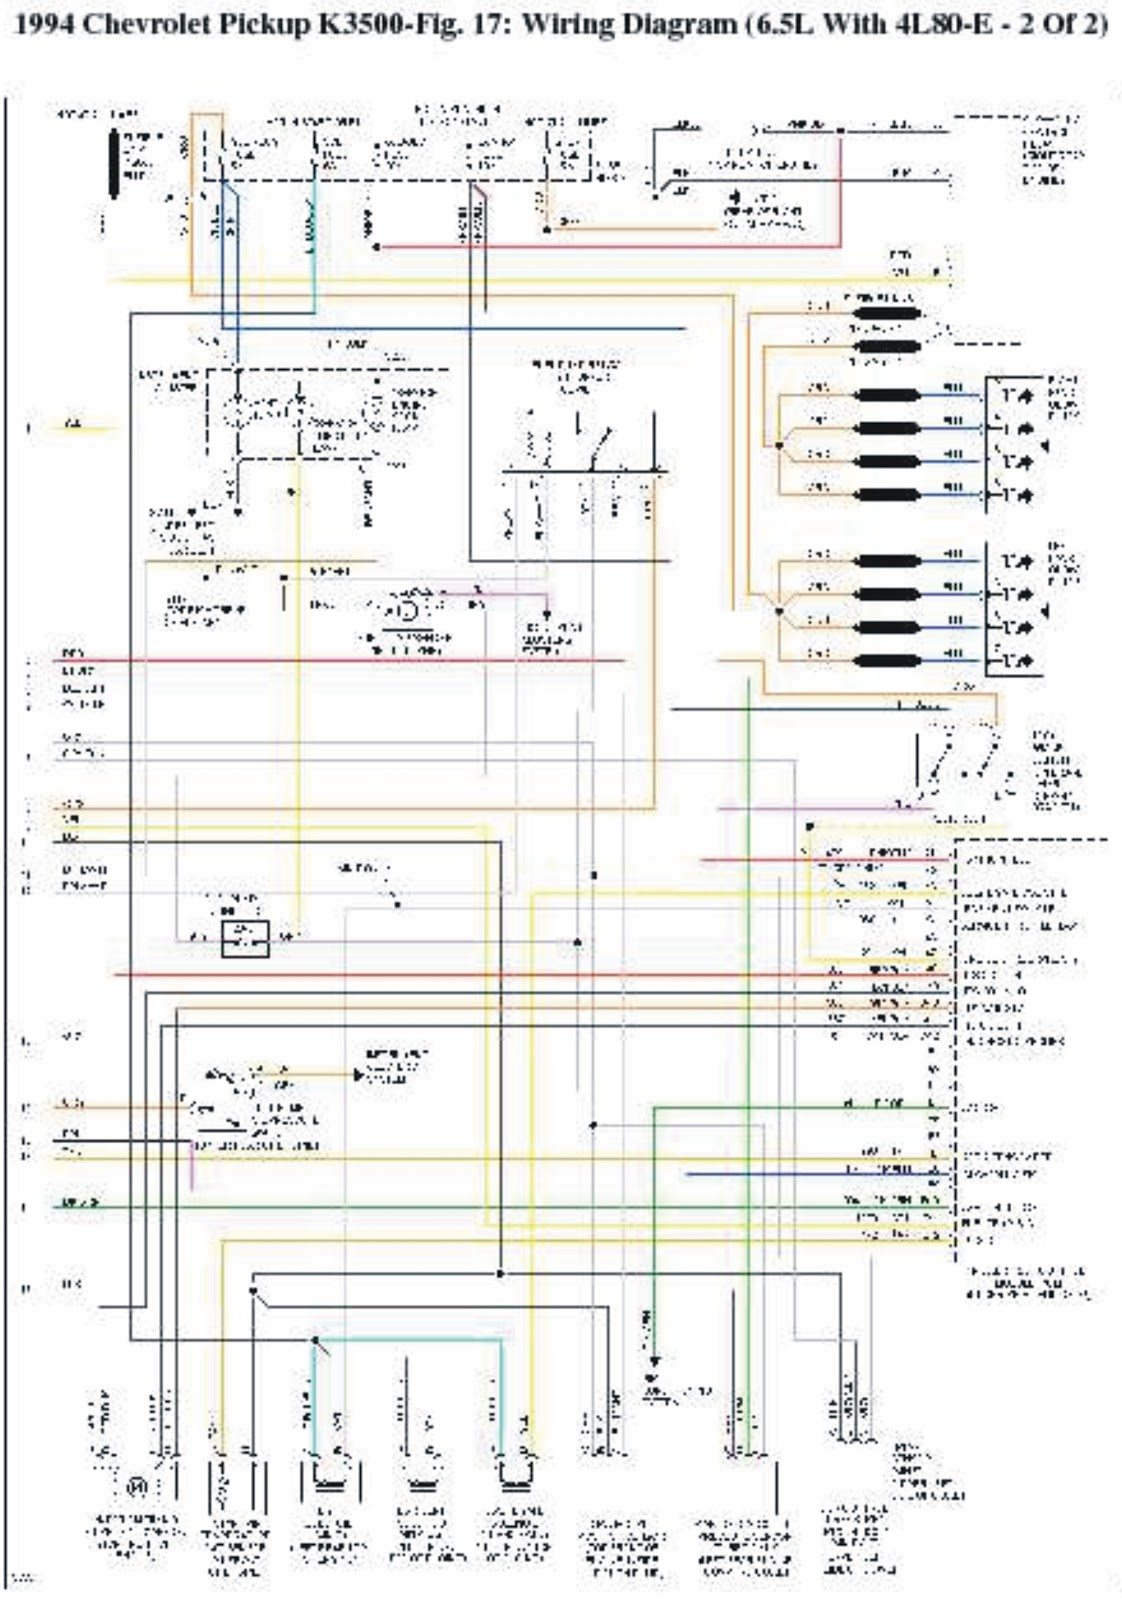 1970 Gmc Wiring Diagram